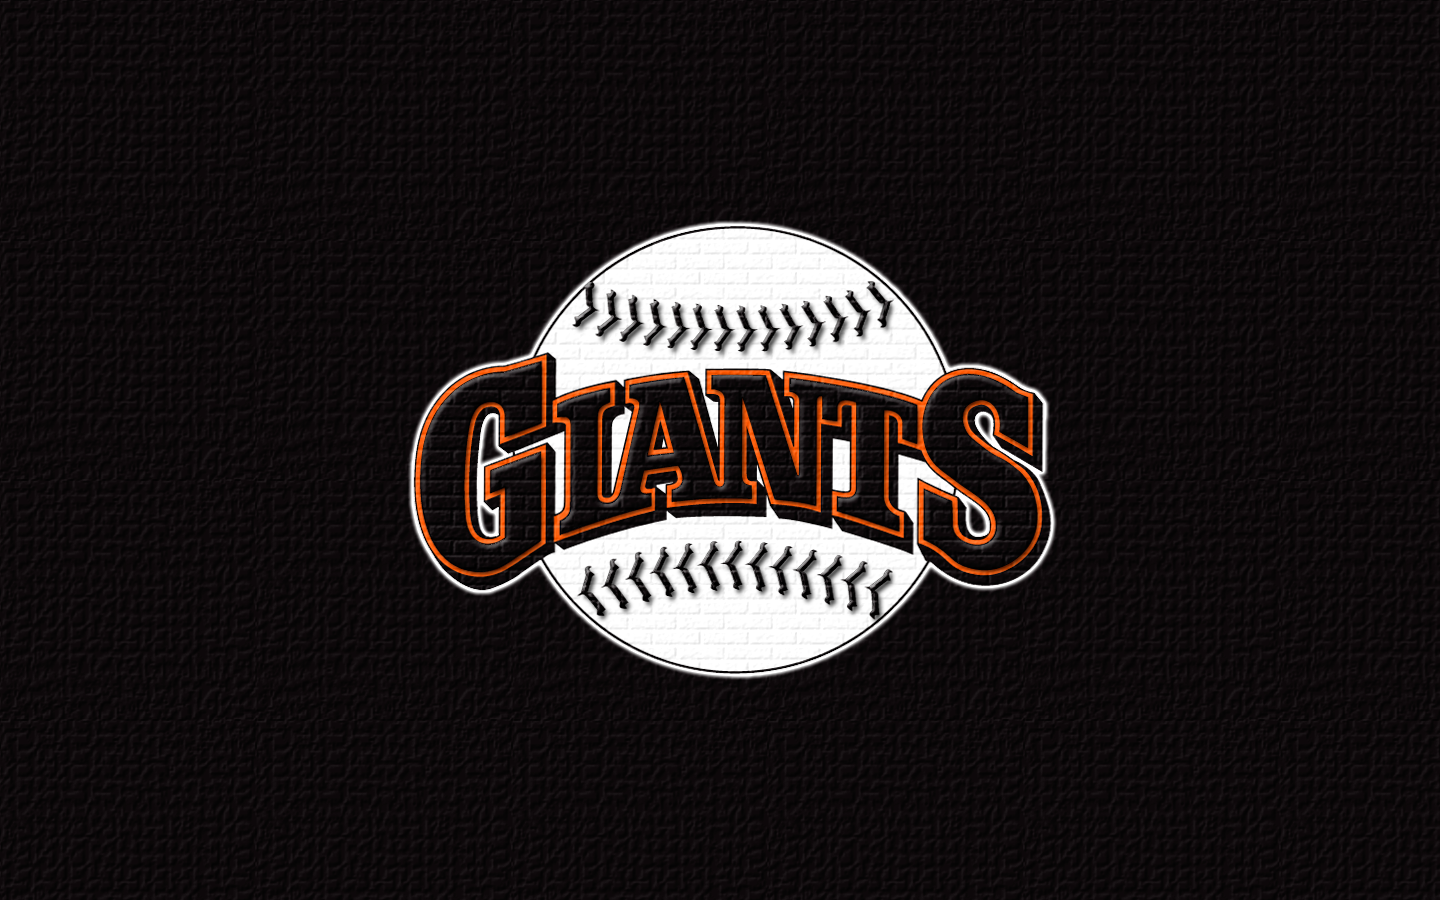 San Francisco Giants Wallpapers - Wallpaper Cave